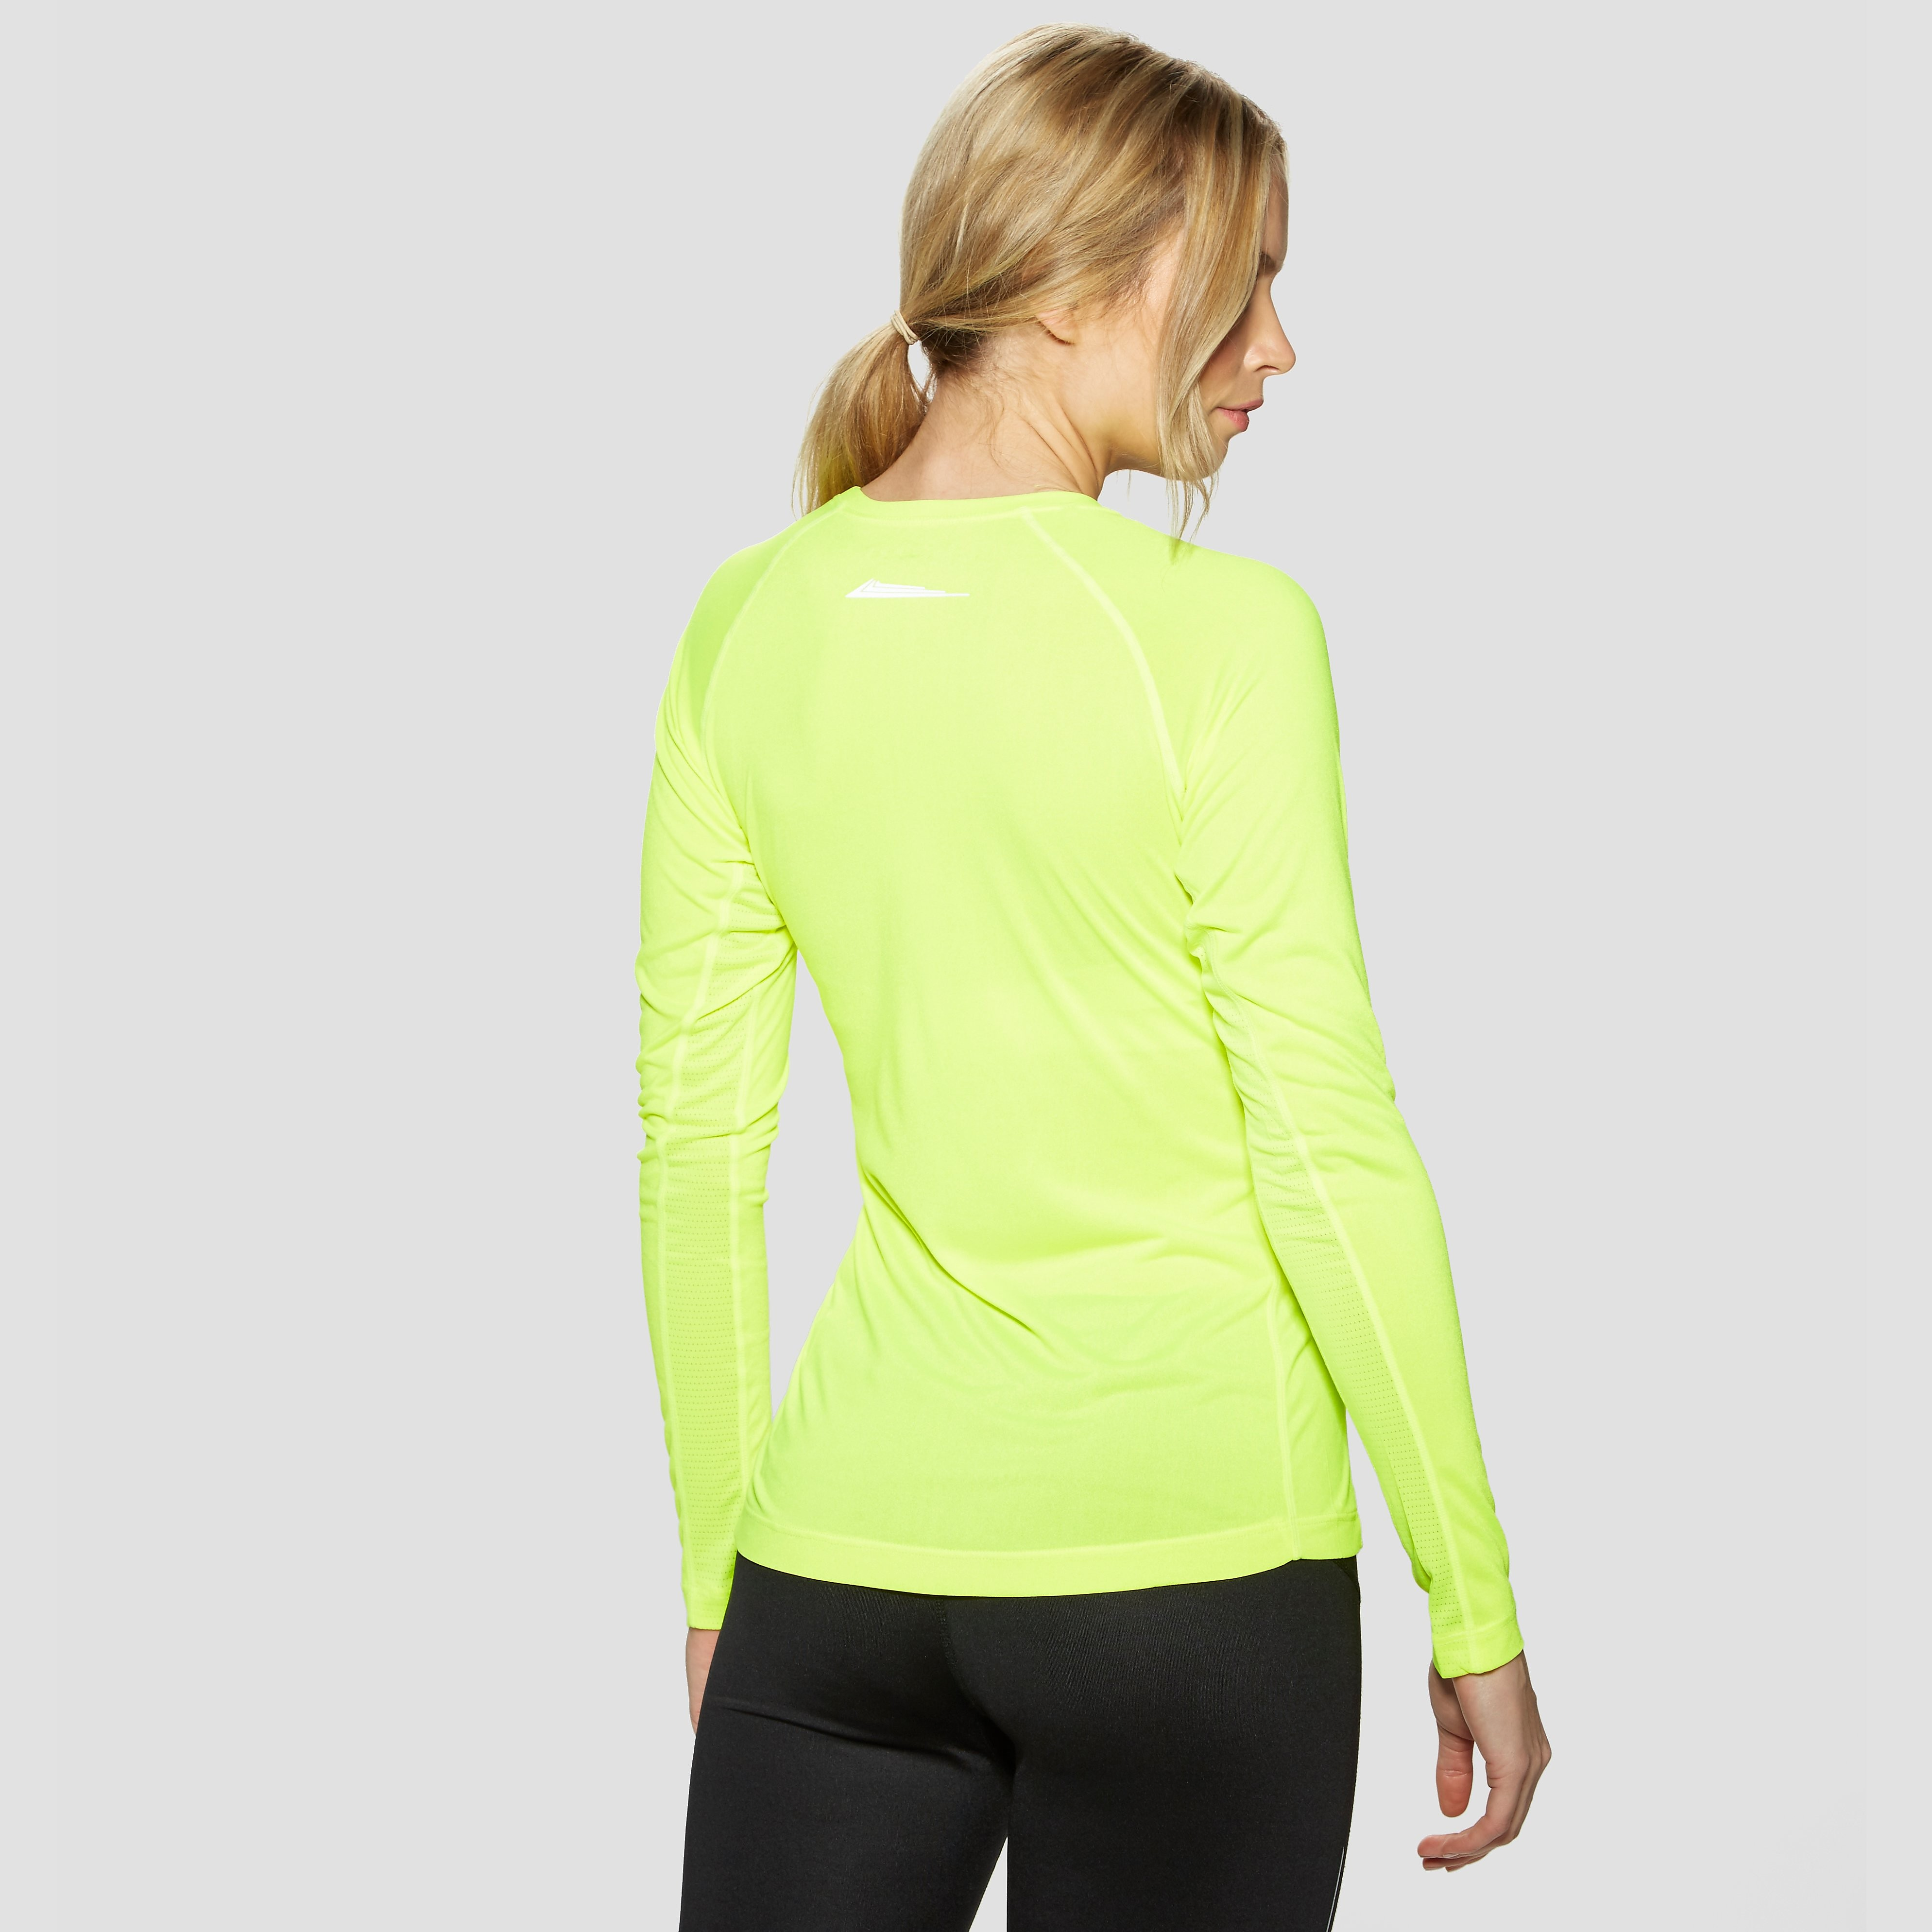 Ronhill  Vizion Motion Long Sleeve Women's T-Shirt